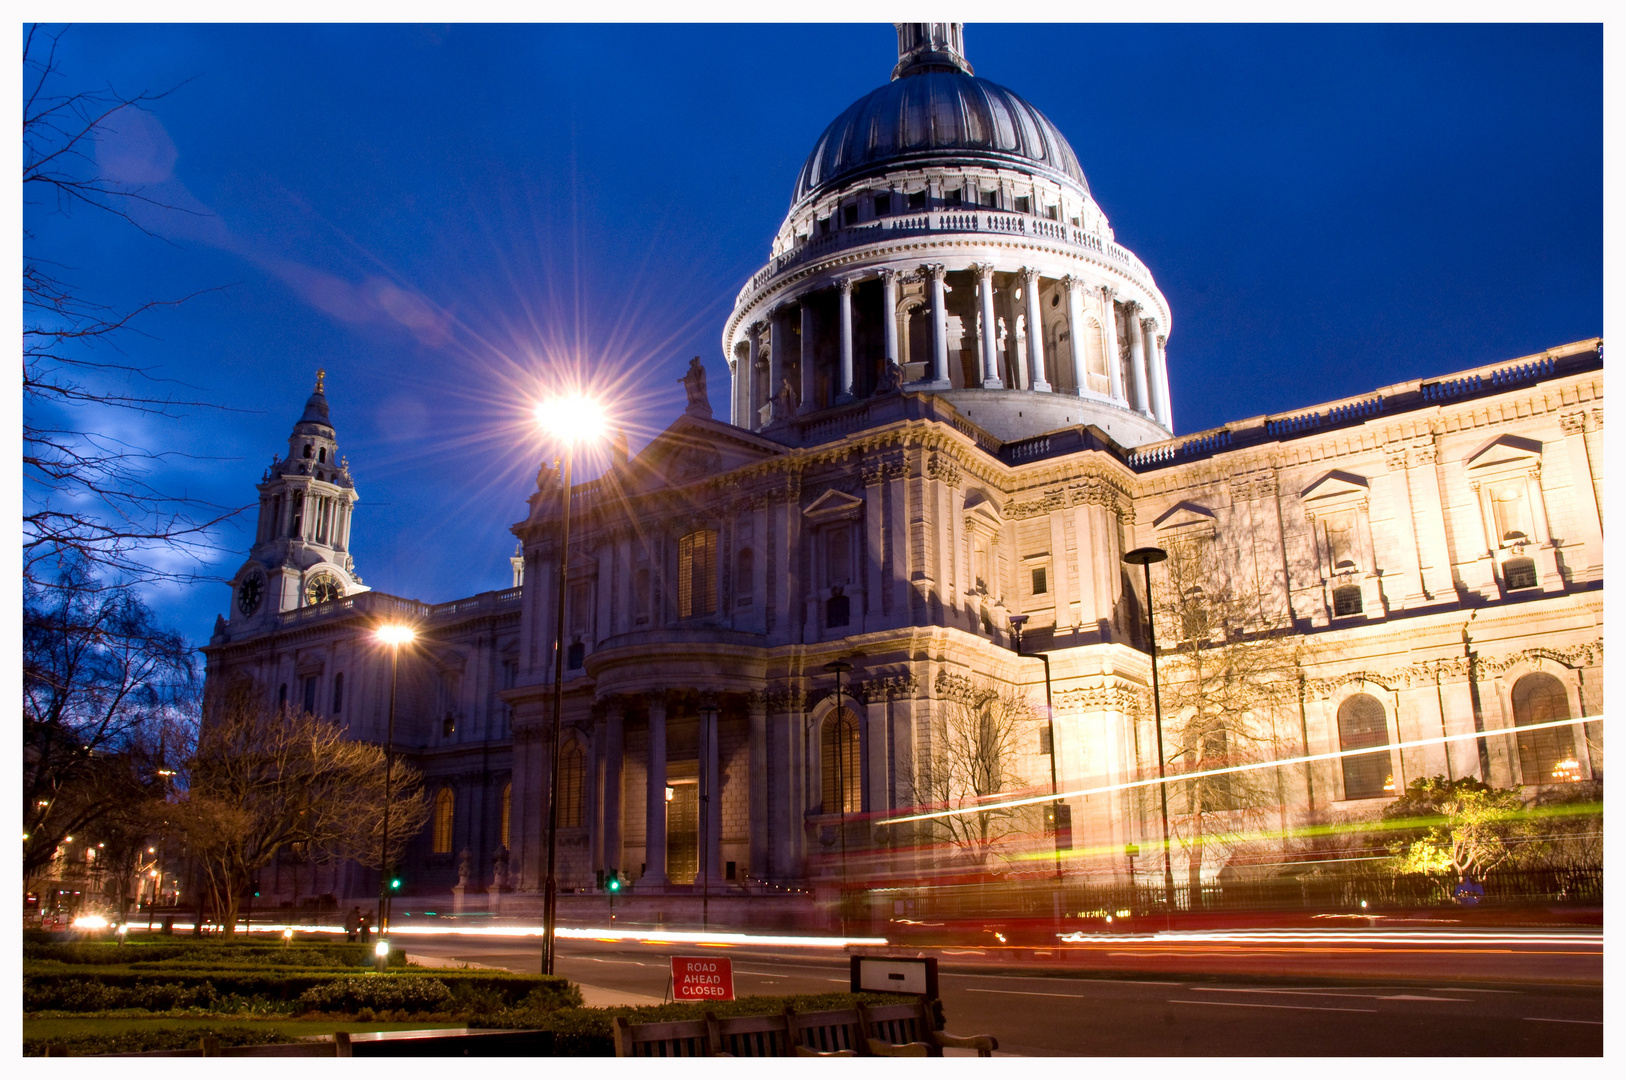 St. Pauls Cathedral @ Night